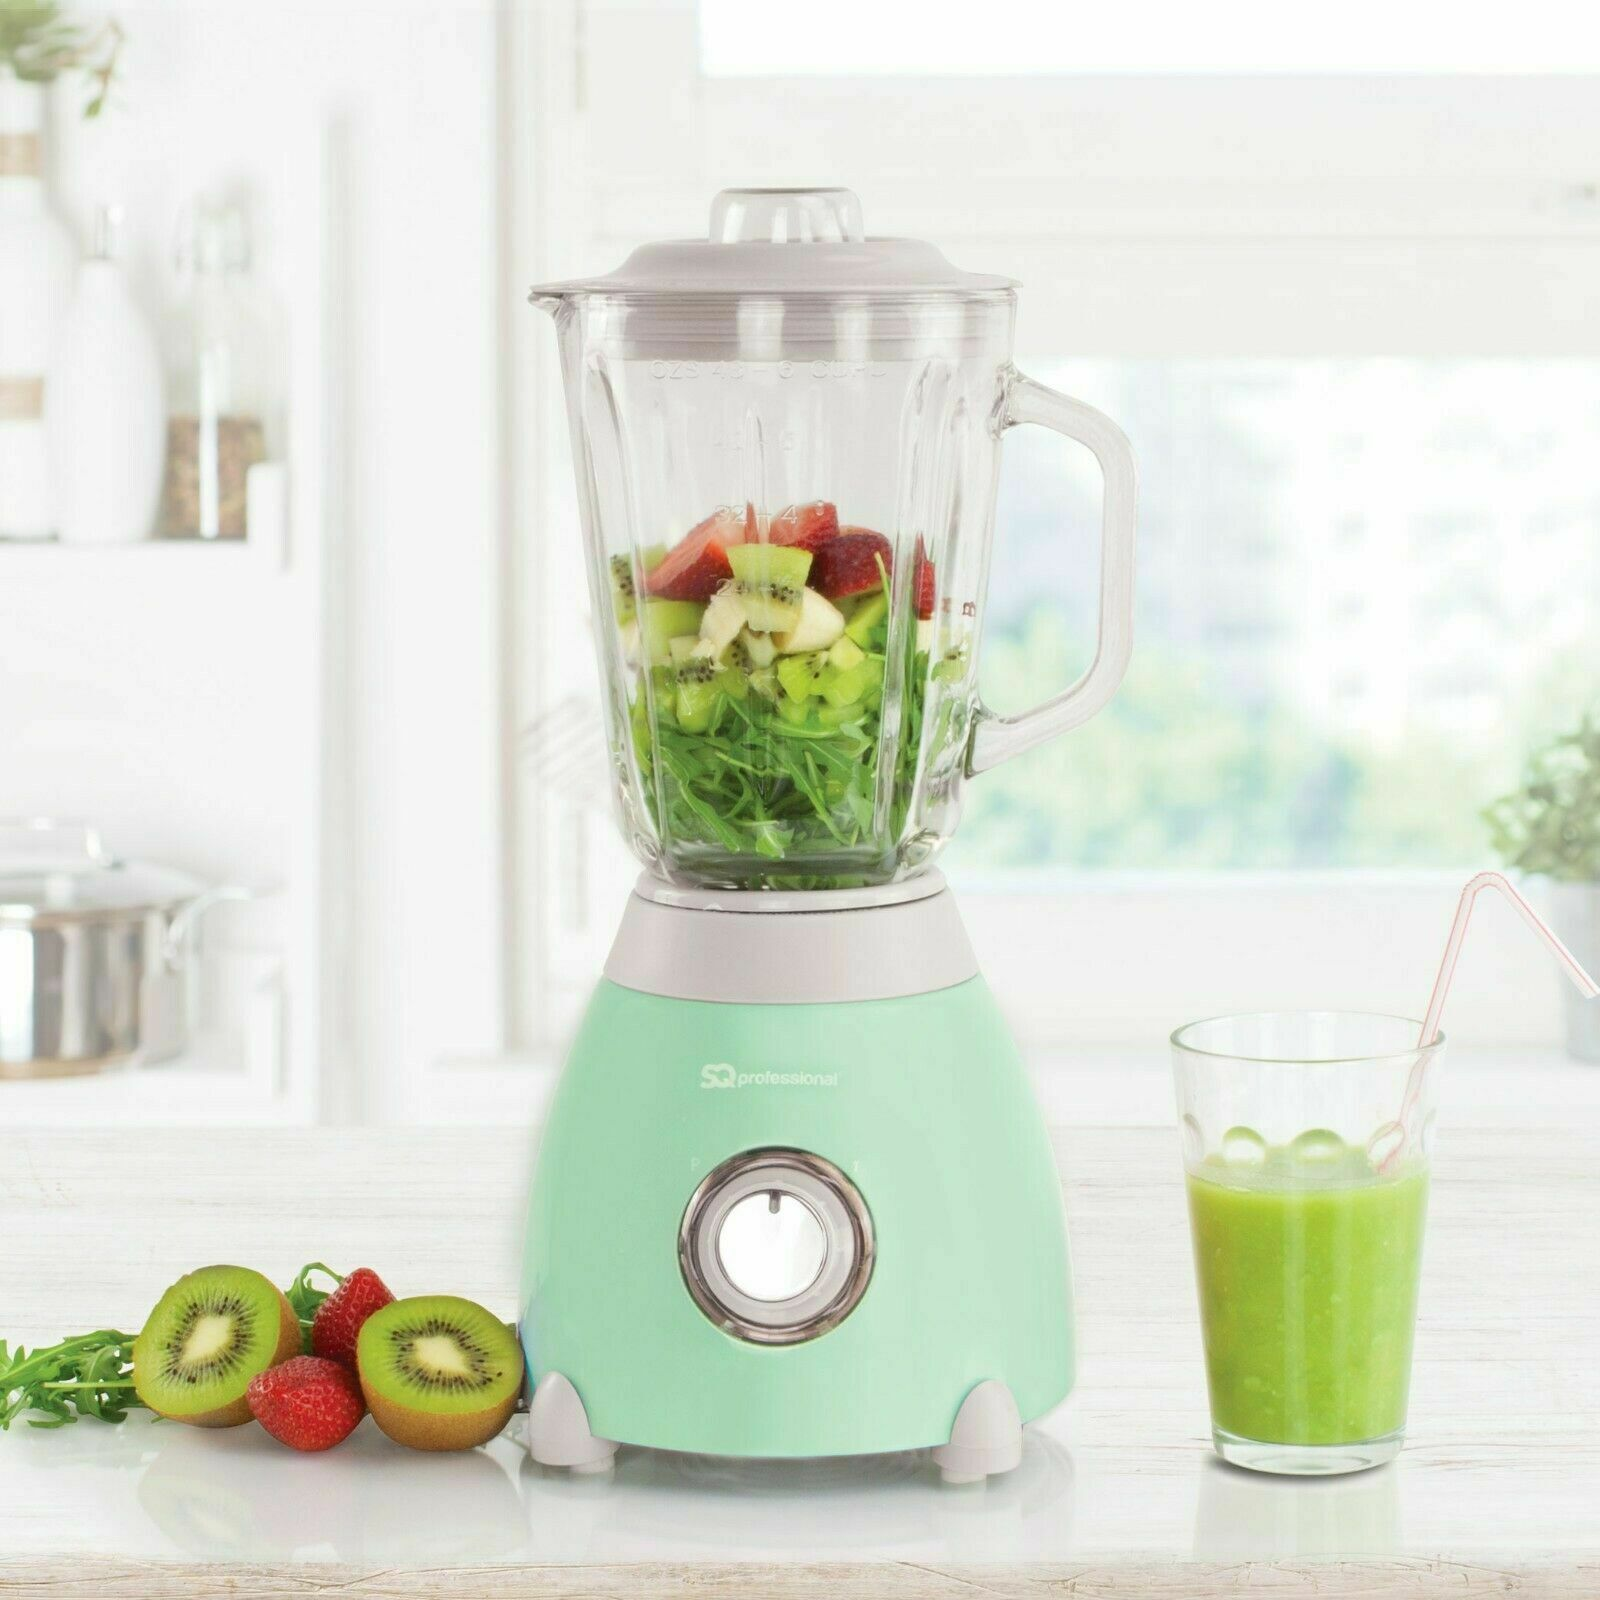 Grinder and Blender 2 in 1 600W Mixer